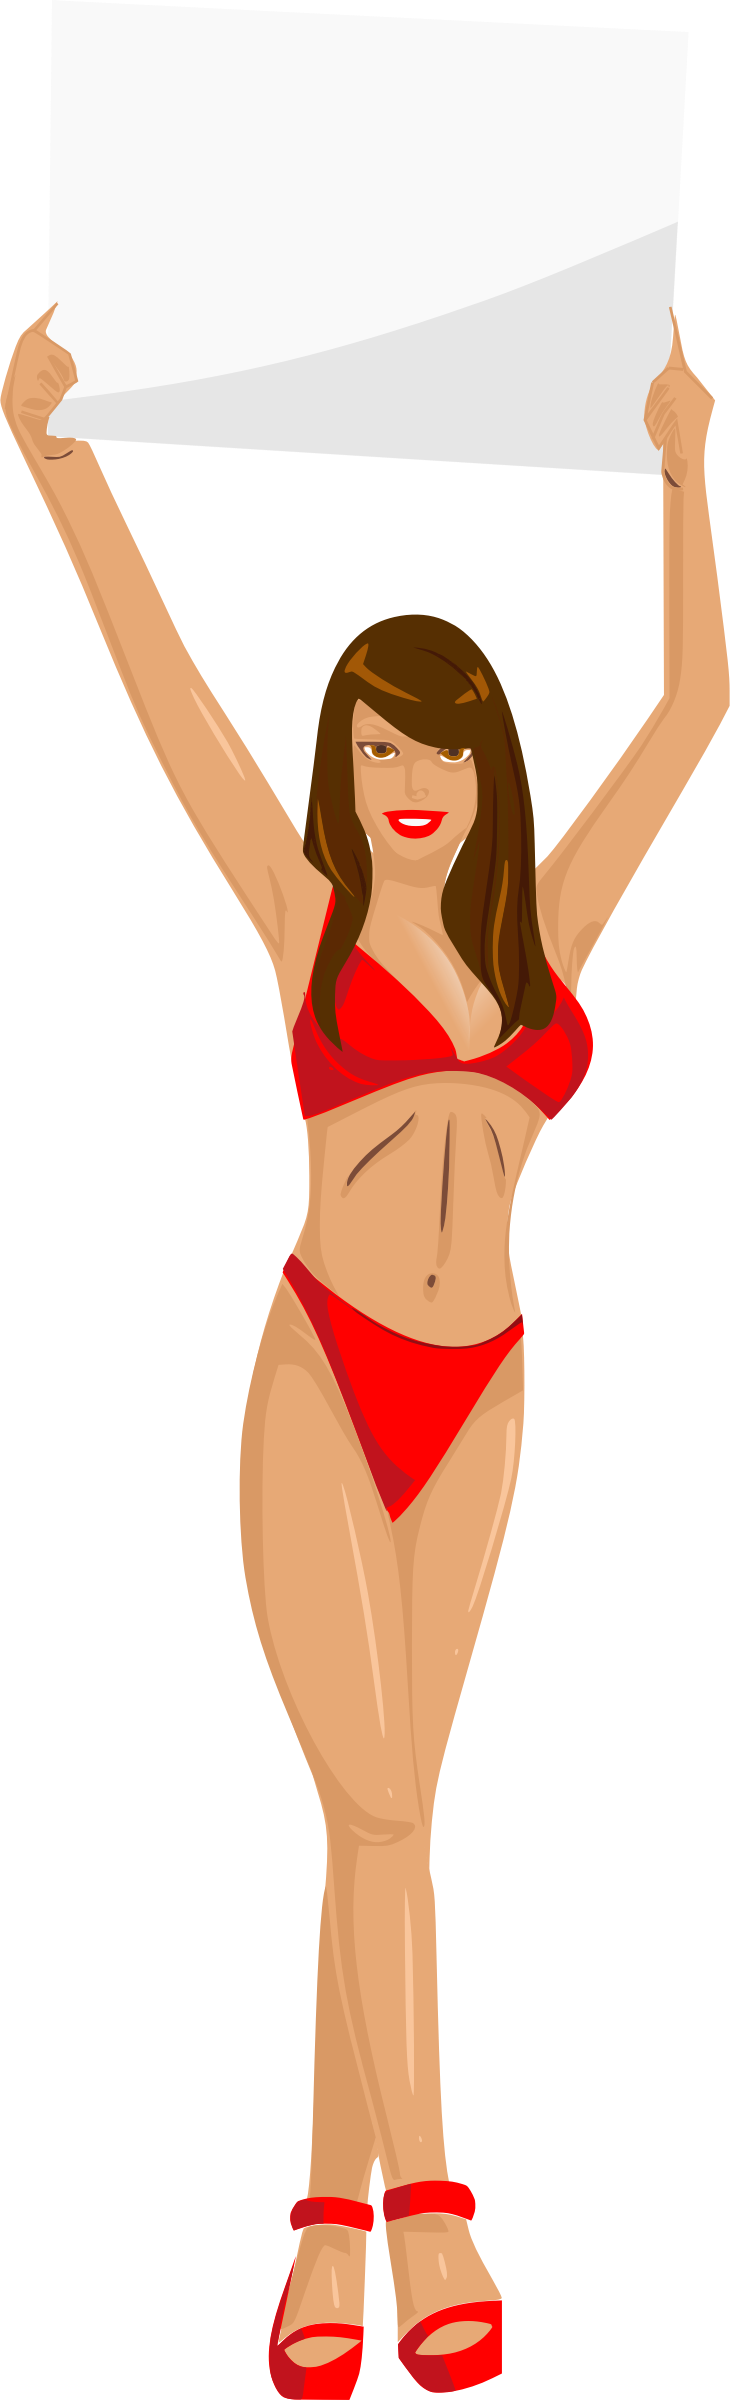 Clipart Girl With Sign Red Bikini Brown Hair Light Skin